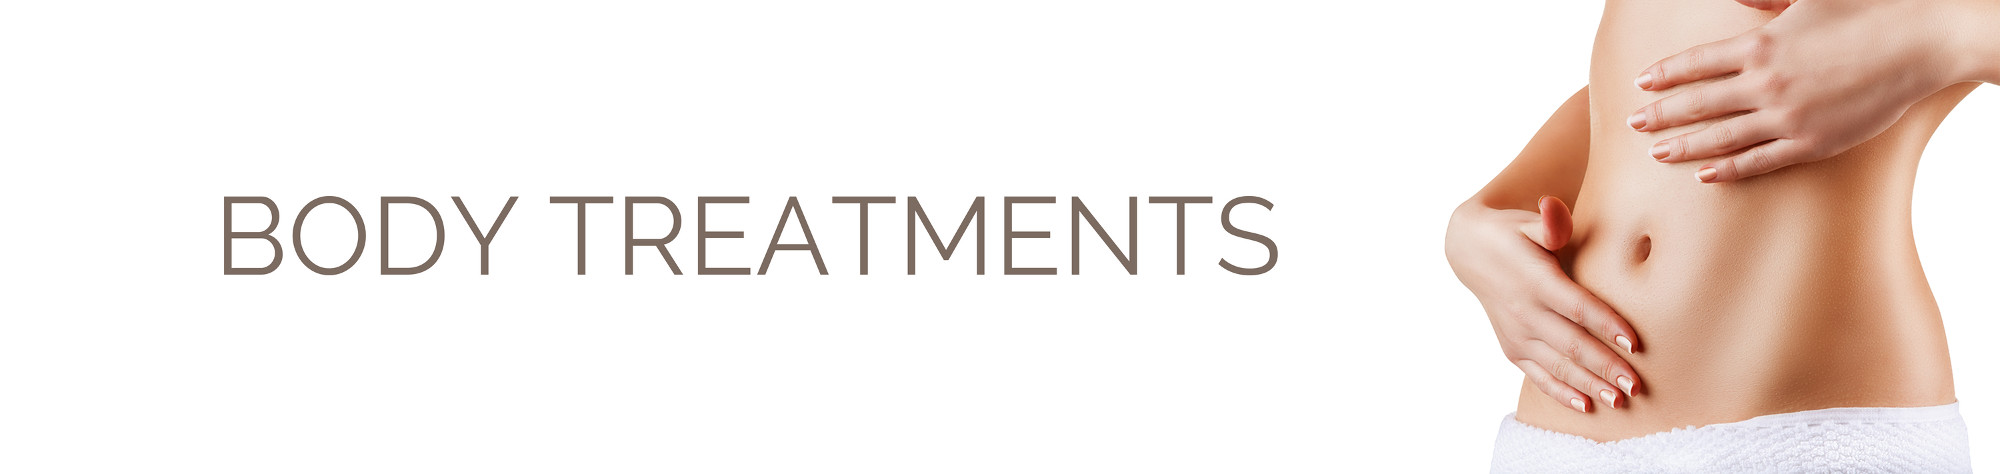 Treatment Header Image